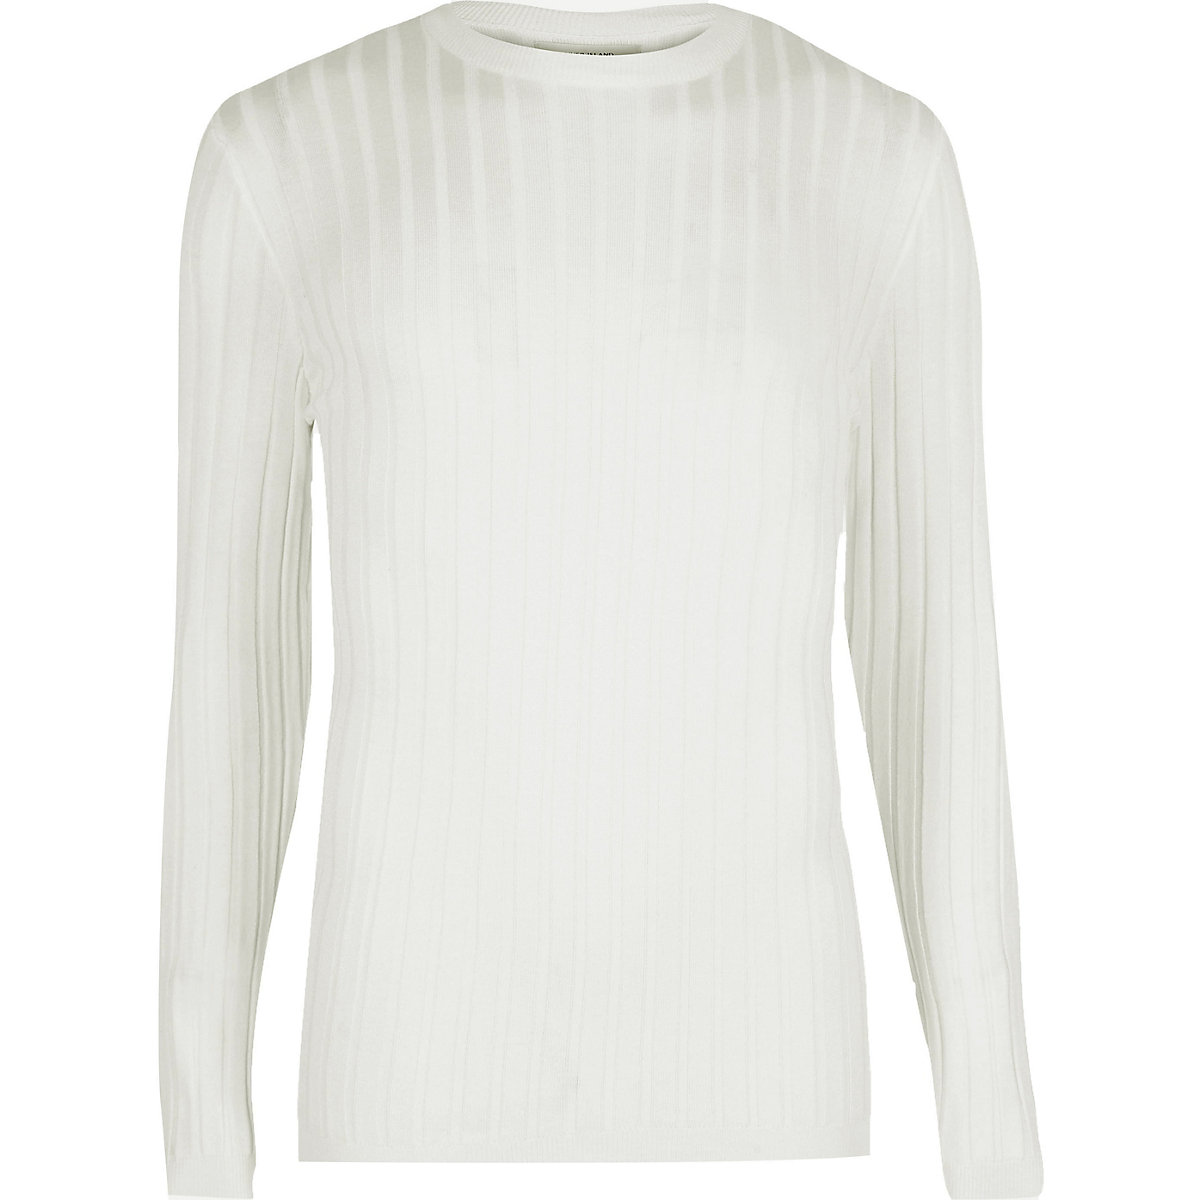 White ribbed muscle fit sweater